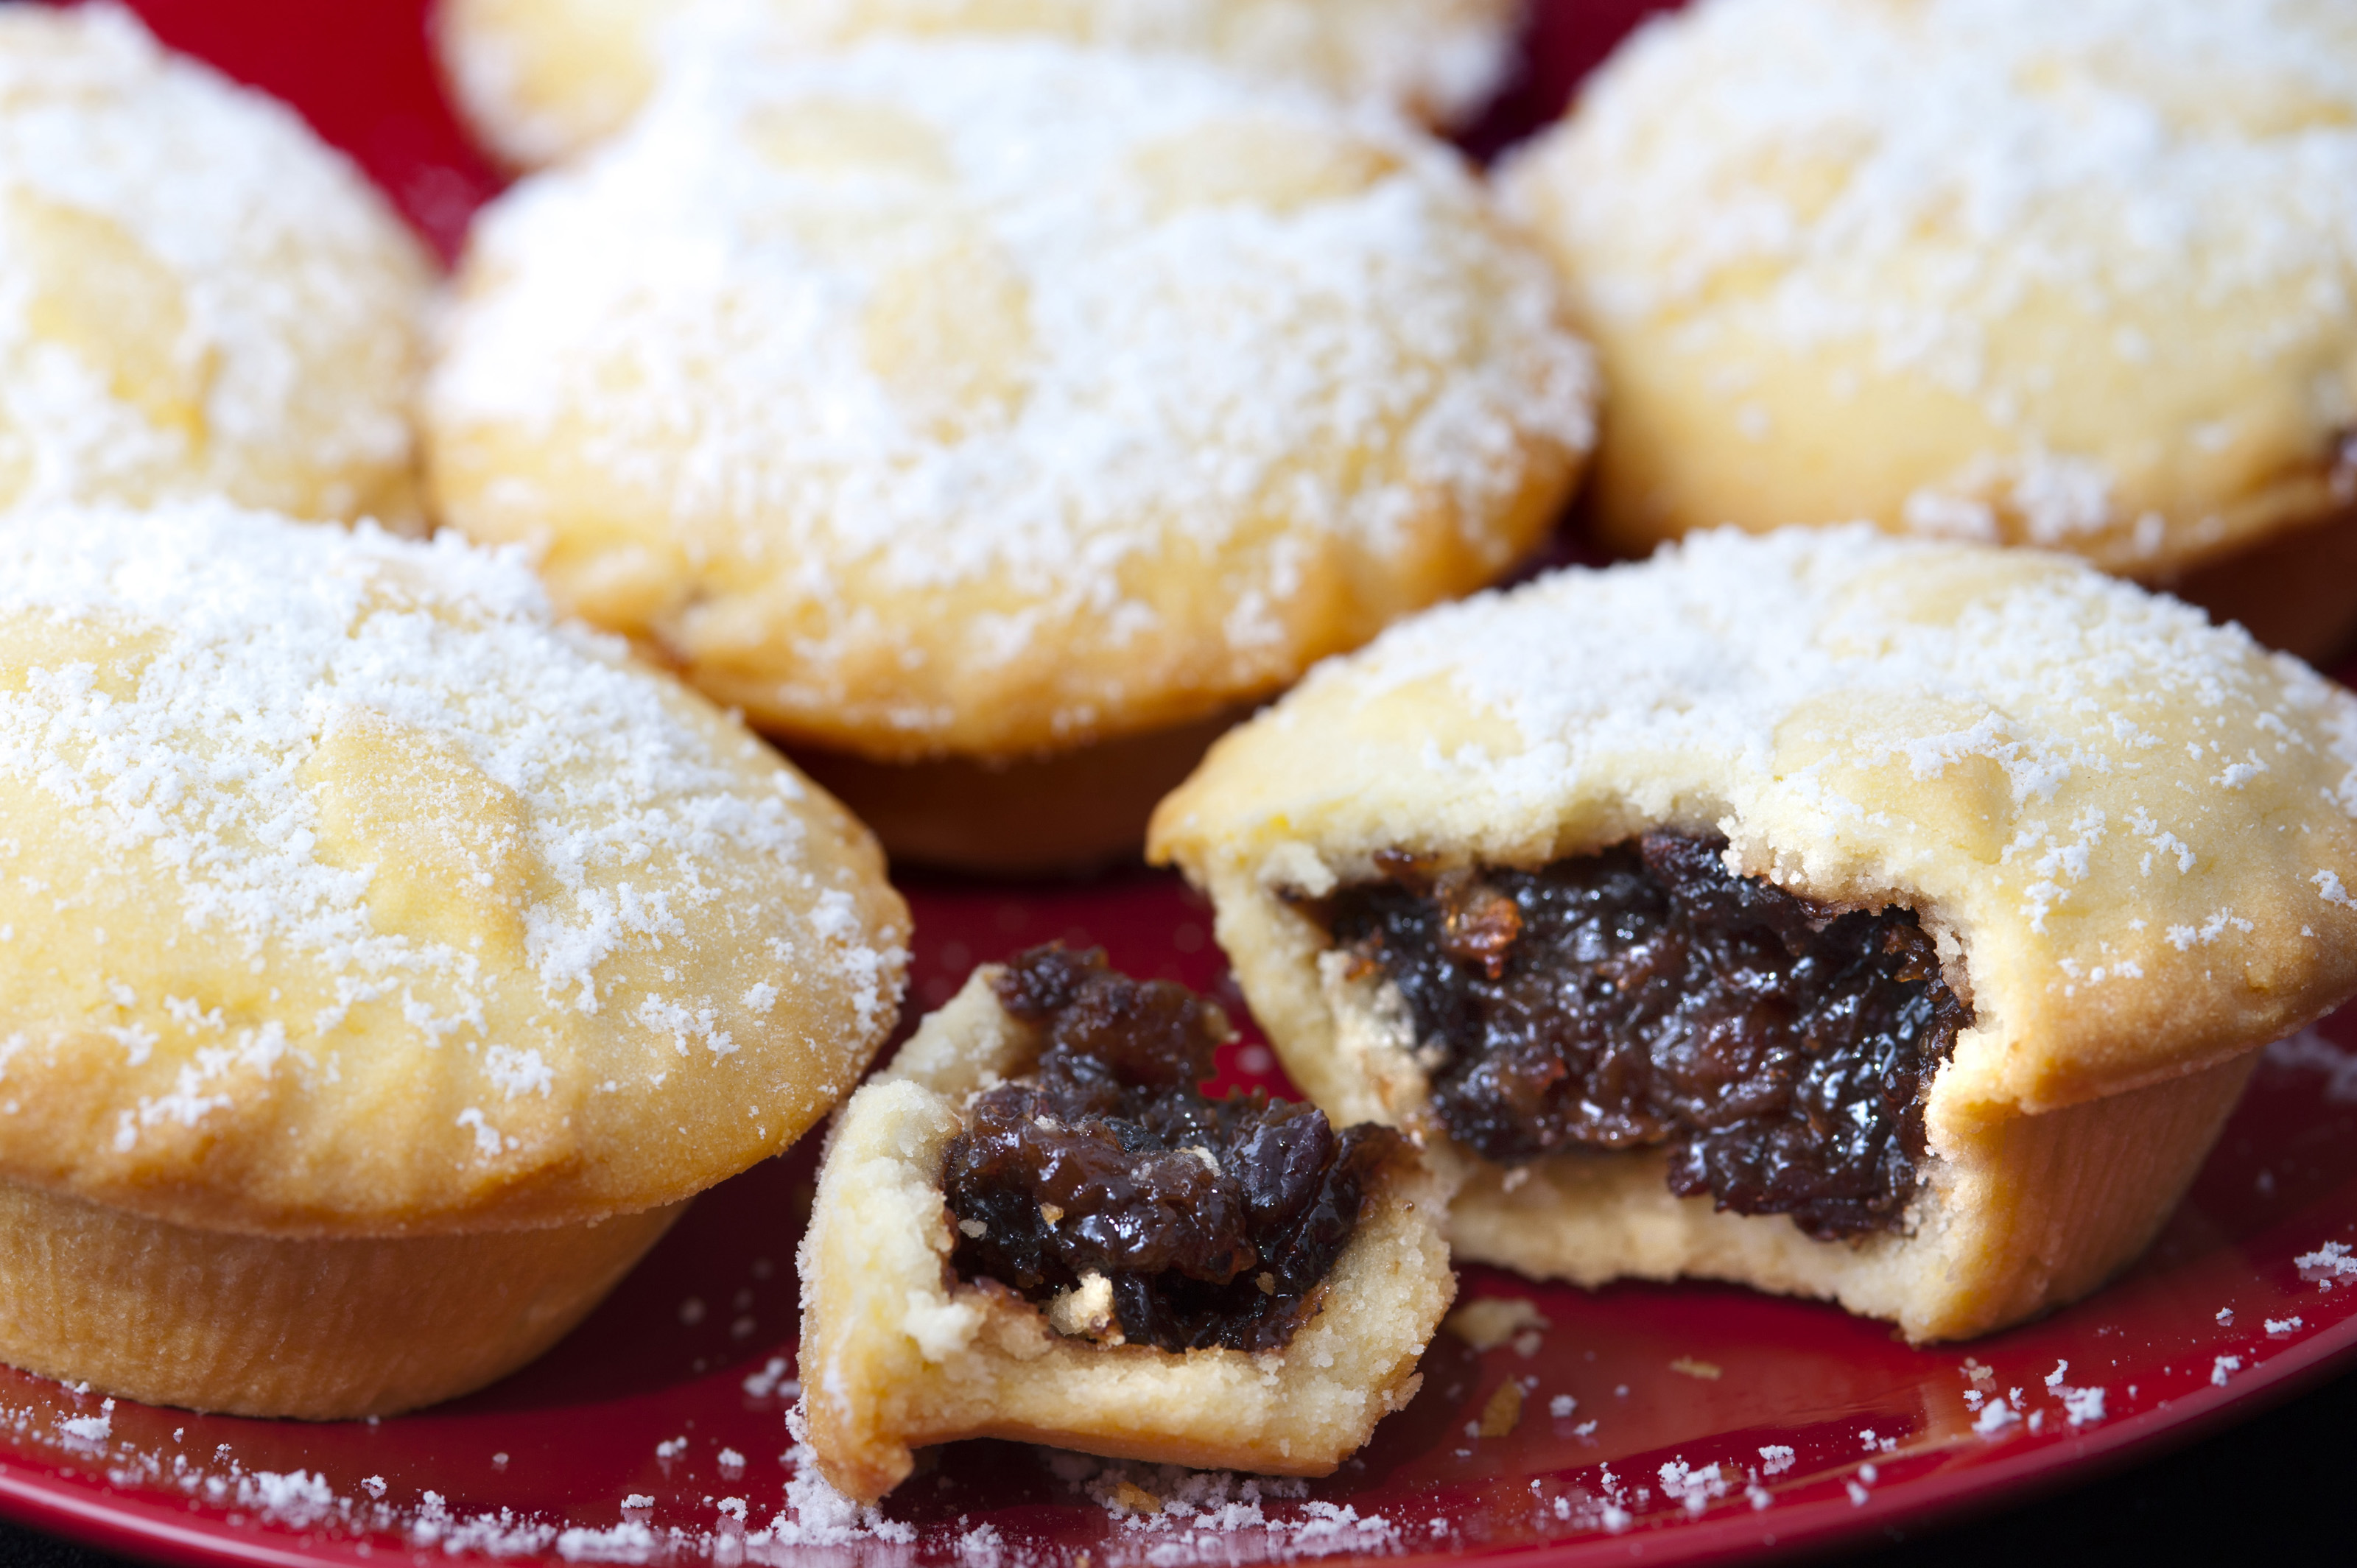 Xmas mince pies-8207 | Stockarch Free Stock Photos: stockarch.com/images/objects/food-and-drink/xmas-mince-pies-8207